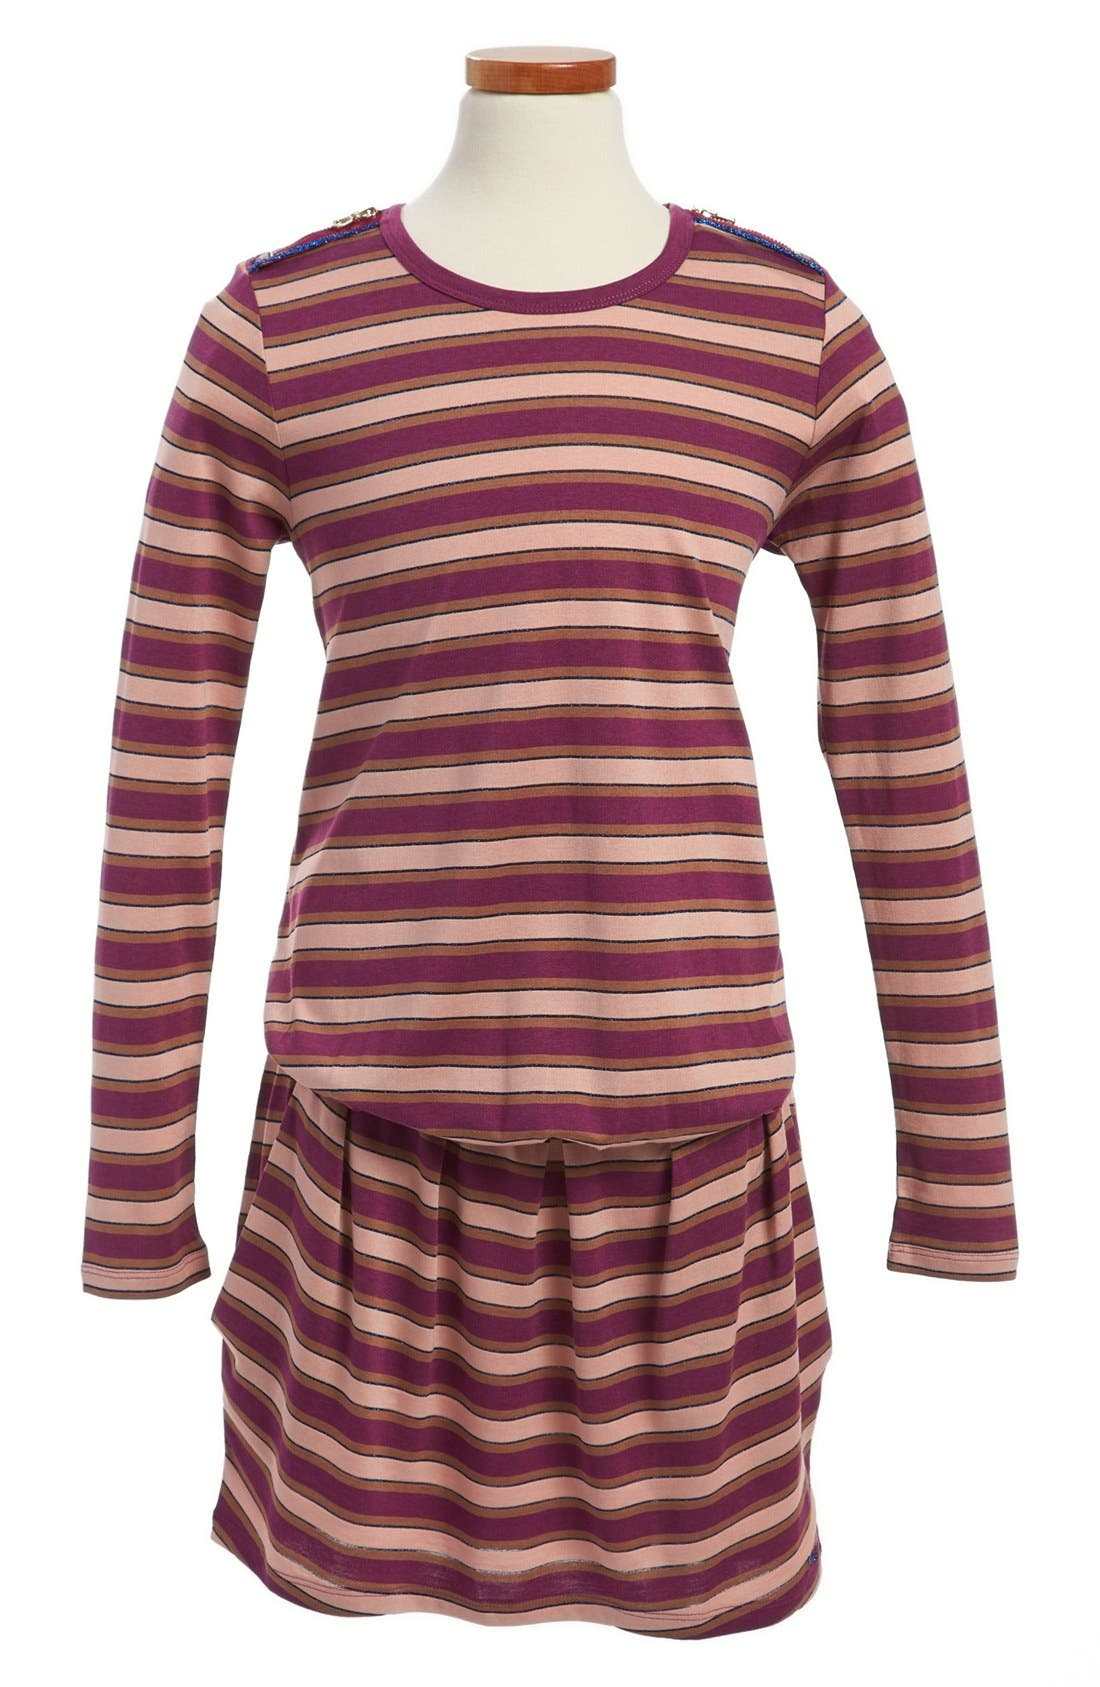 Alternate Image 1 Selected - LITTLE MARC JACOBS Long Sleeve Jersey Dress (Toddler Girls, Little Girls & Big Girls)